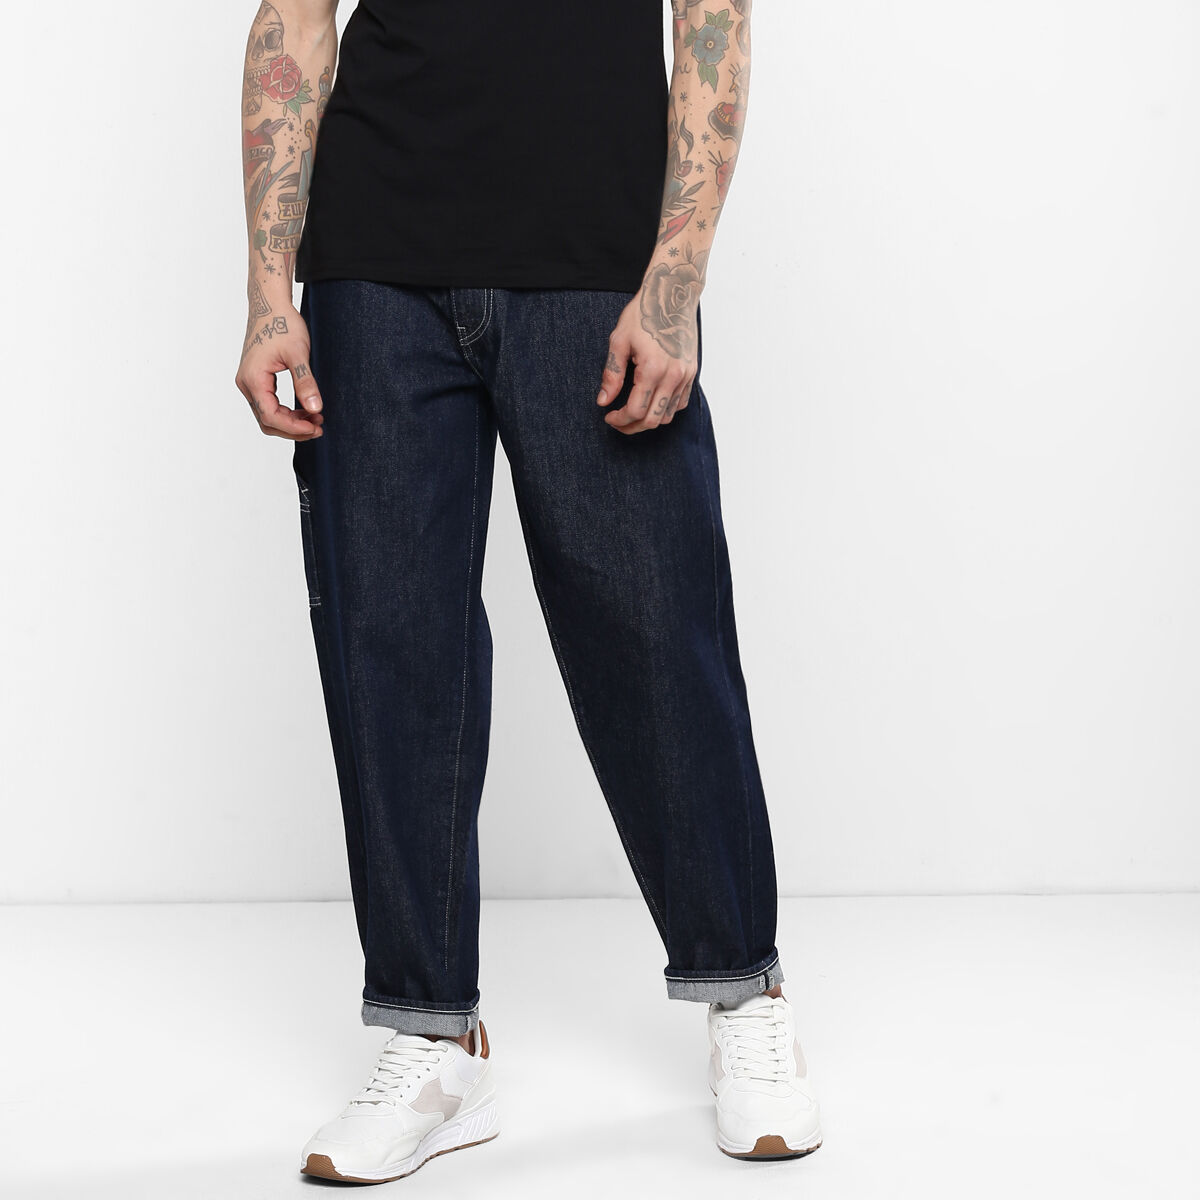 562™ Loose Tapered Fit Utility Jeans